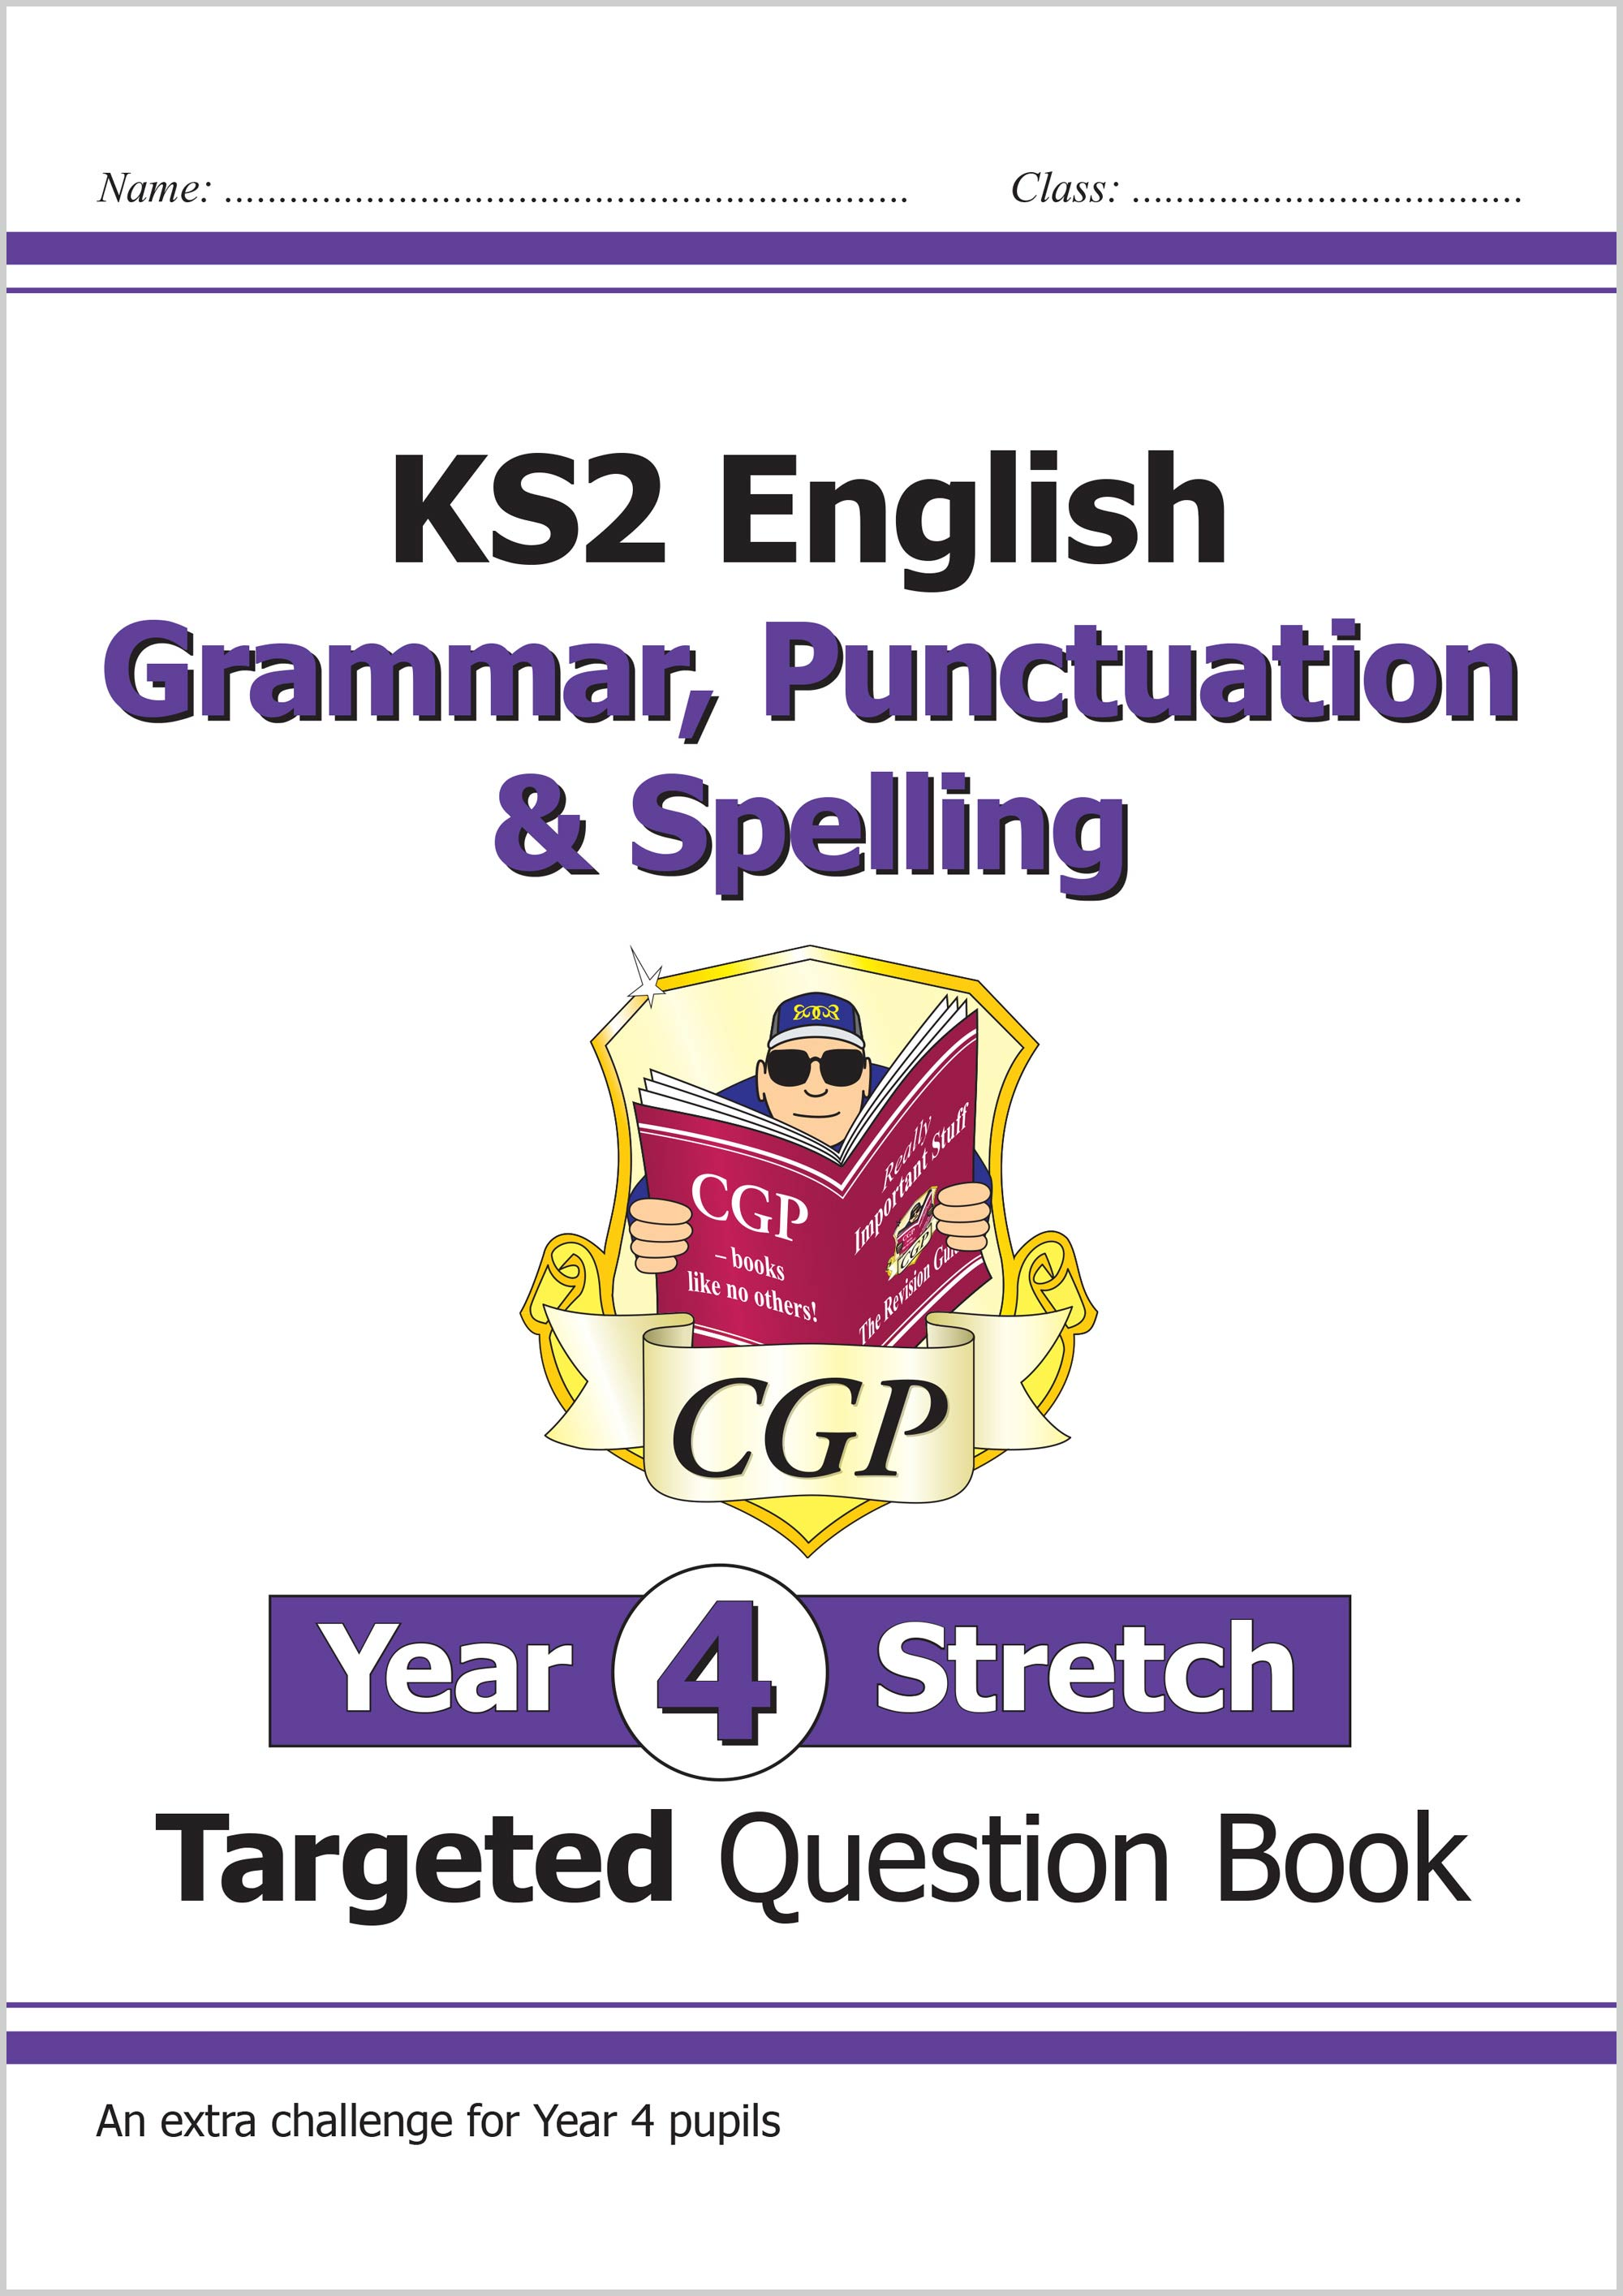 EG4HW21 - New KS2 English Targeted Question Book: Challenging Grammar, Punctuation & Spelling - Year